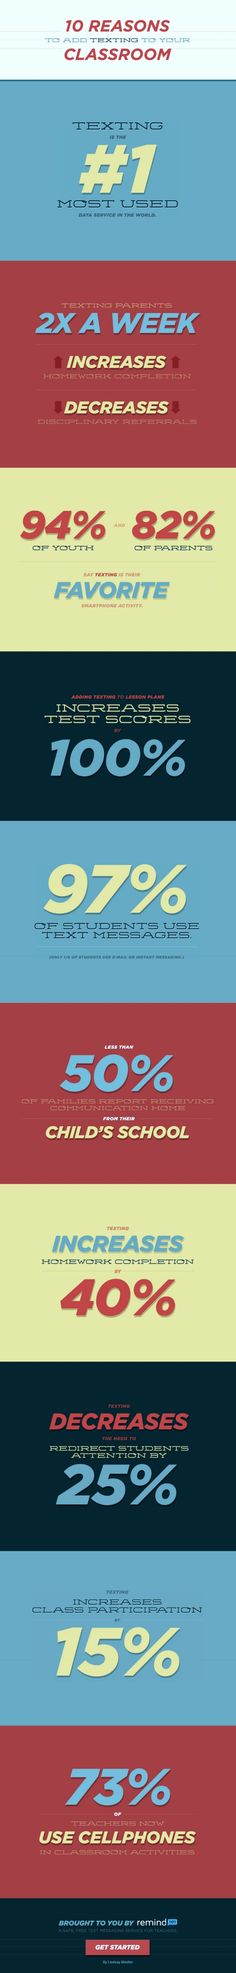 10 Reasons to Add Texting to Your Classroom.